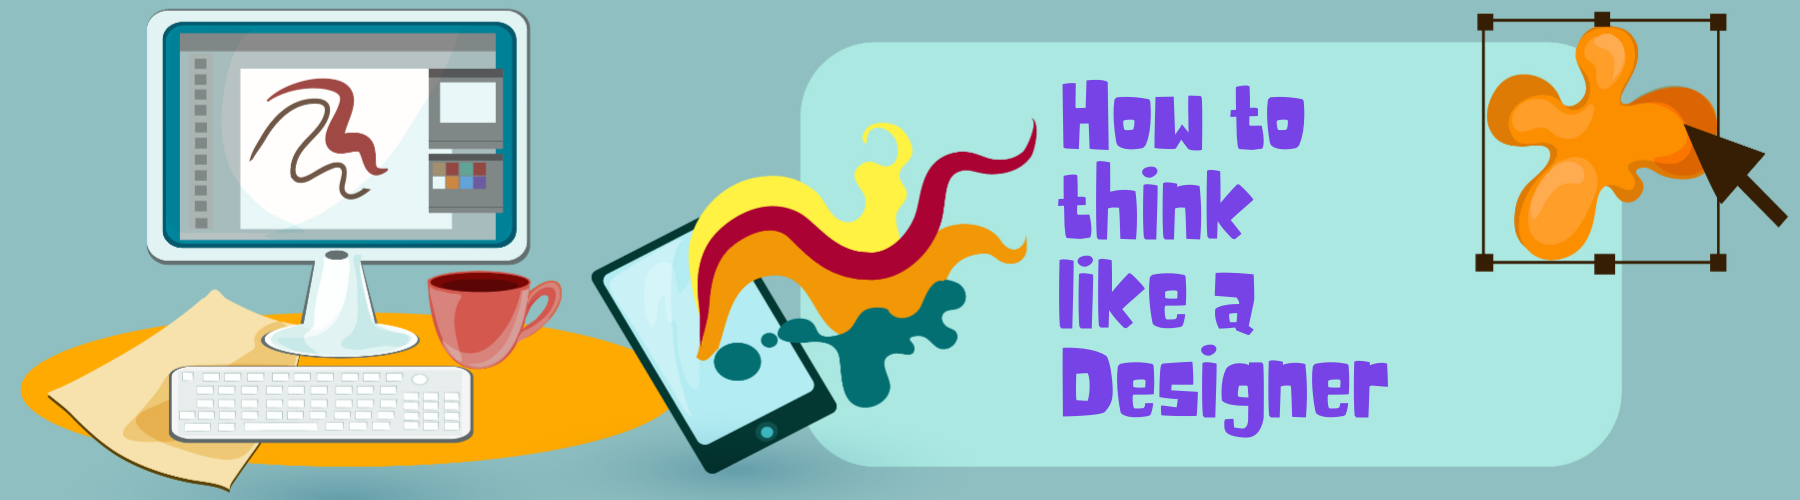 How to think like a designer